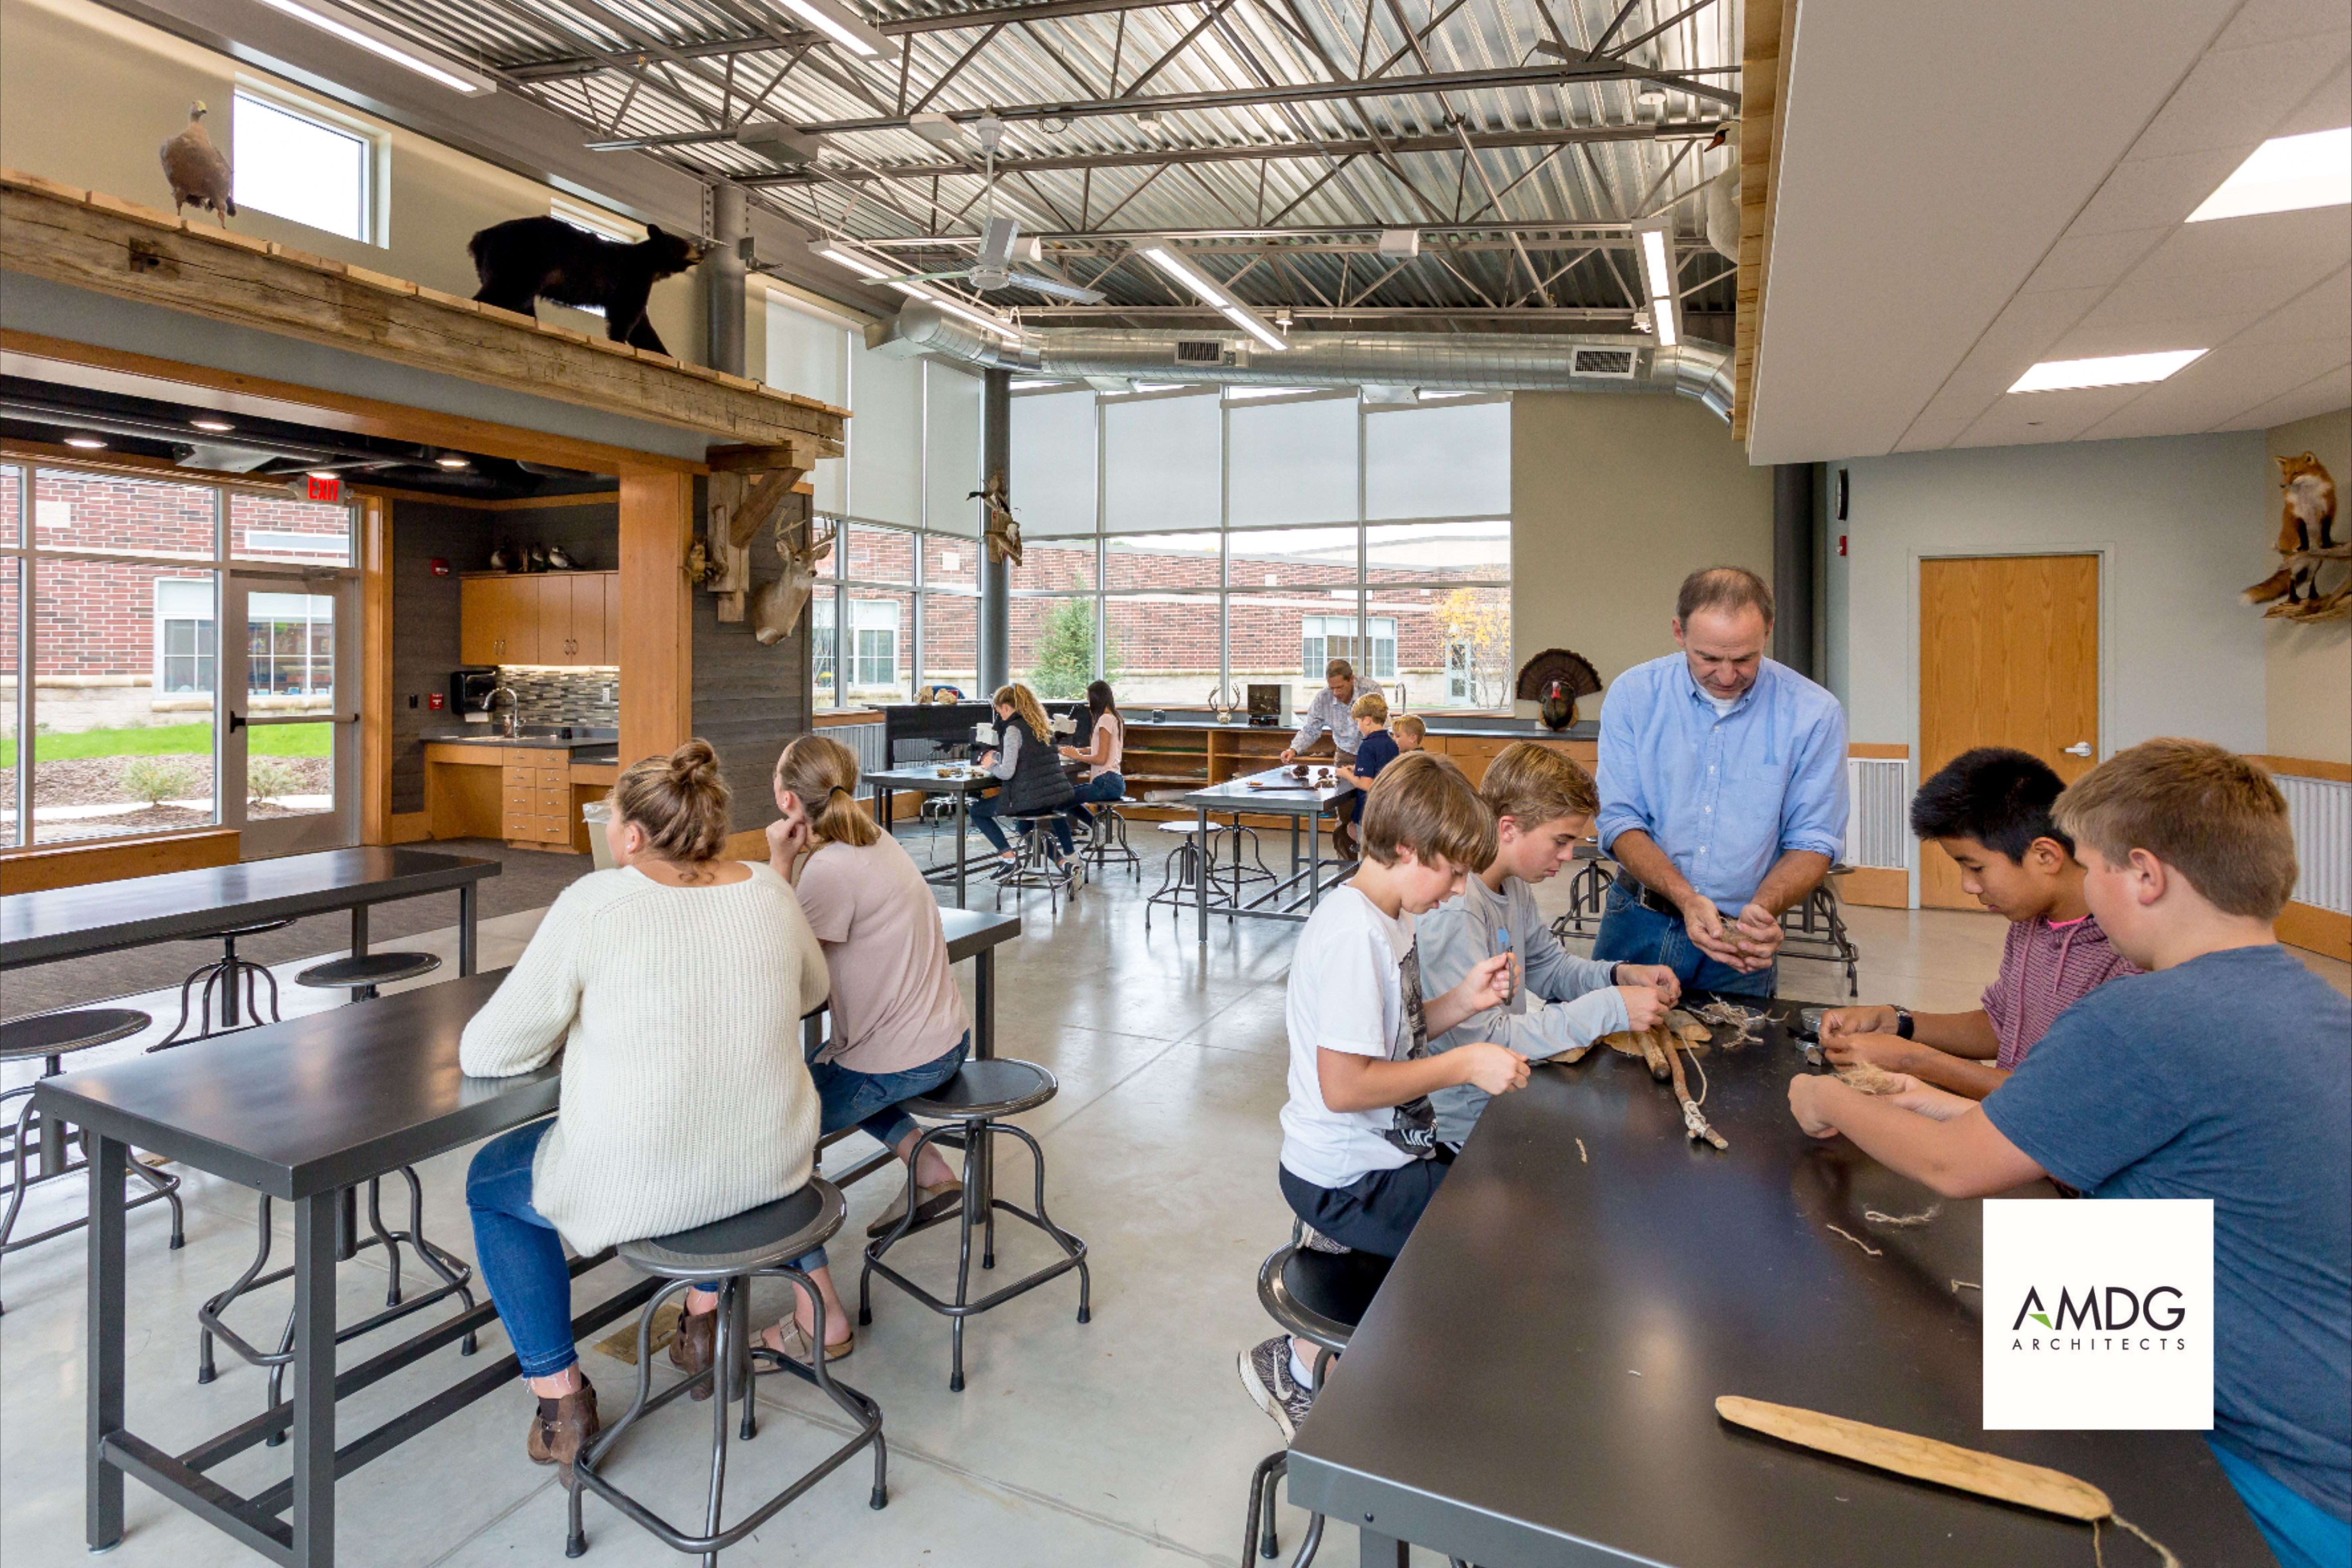 Pin By Amdg Architects On Education Architect Home Grand Rapids